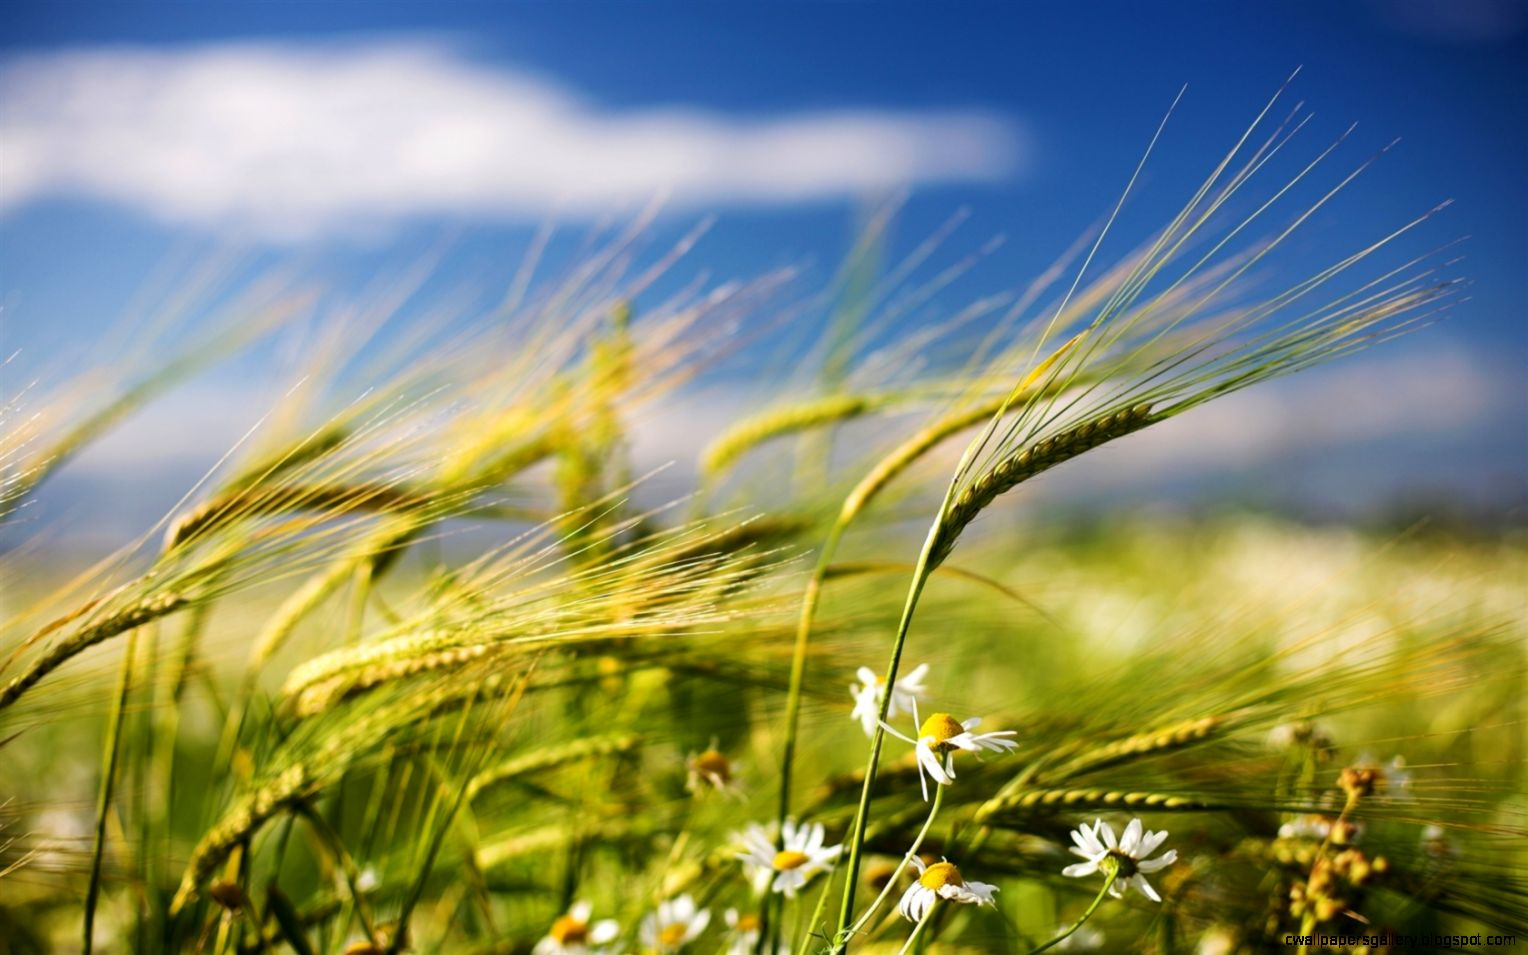 Summer wheat and wildflowers Wallpaper  1680x1050 resolution